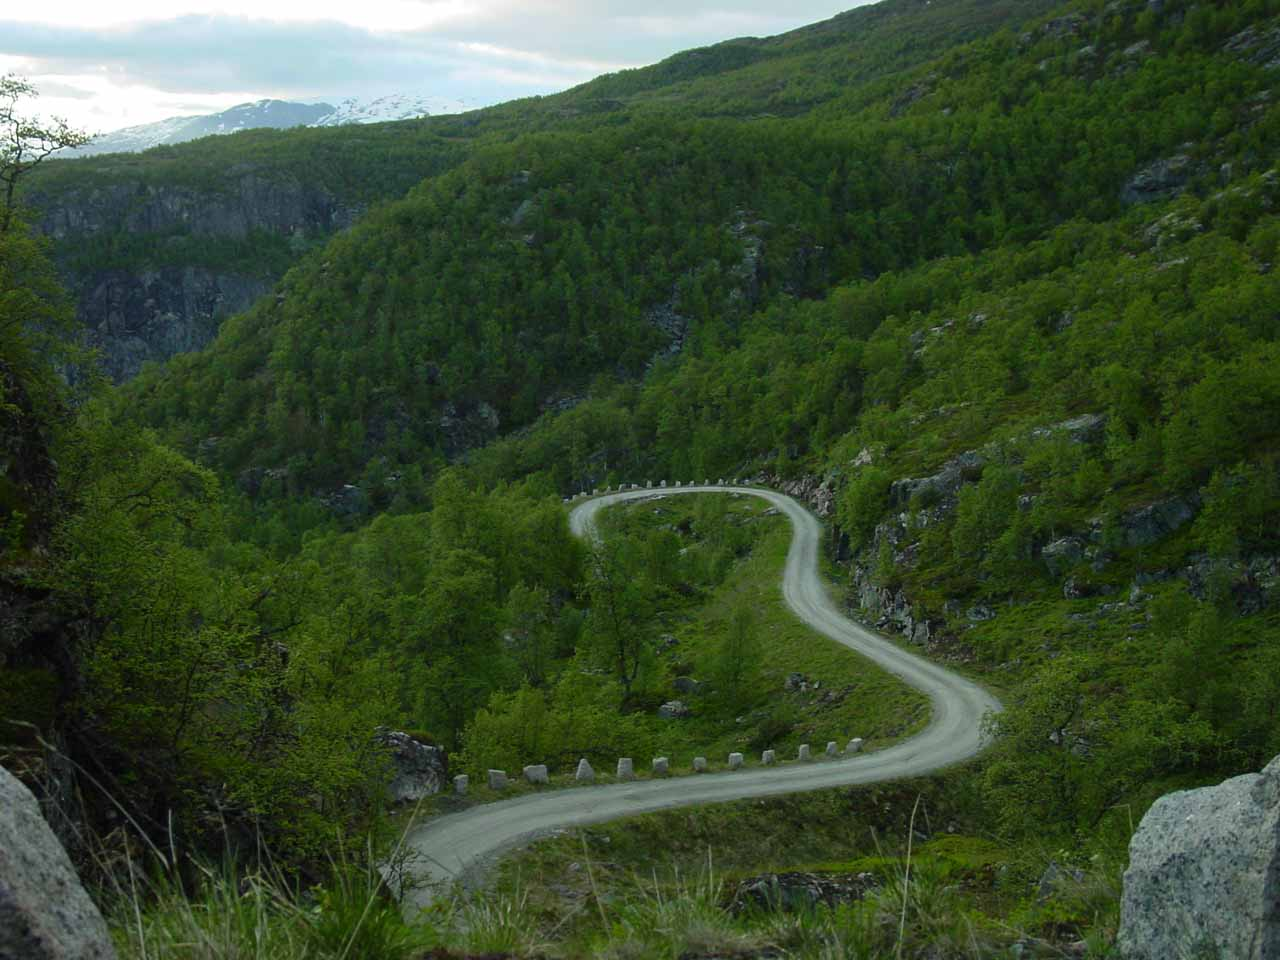 Looking back at the narrow mountain road rising from deep within Hjølmodalen to the trailhead for Valursfossen